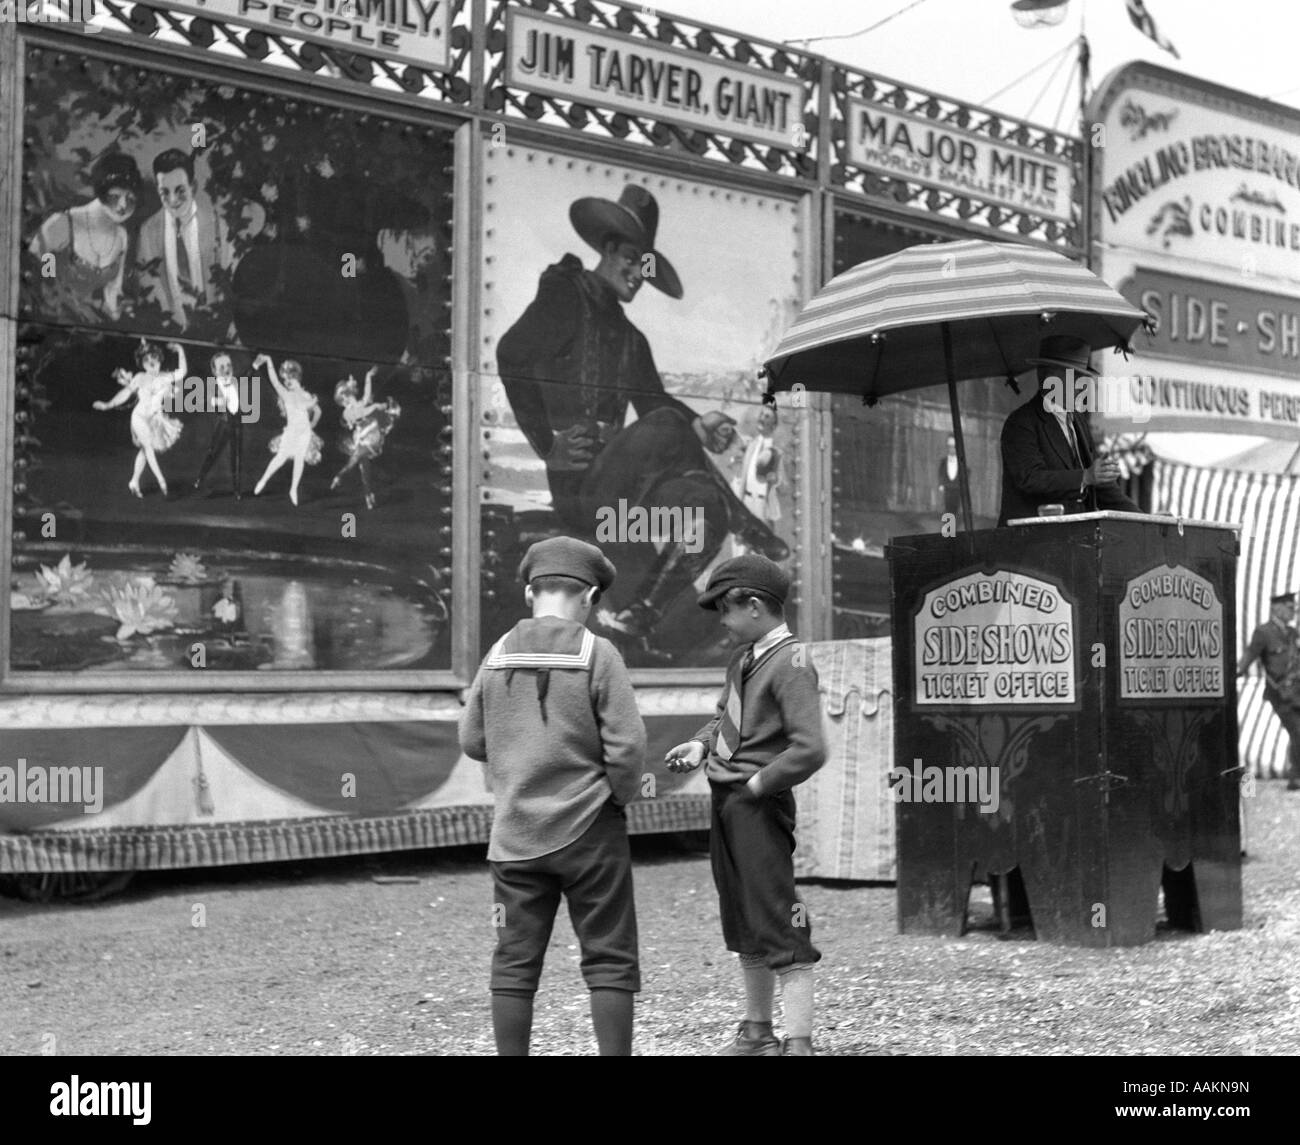 1920s BOYS COUNTING CHANGE FOR ENTRANCE TO CIRCUS SIDESHOW - Stock Image